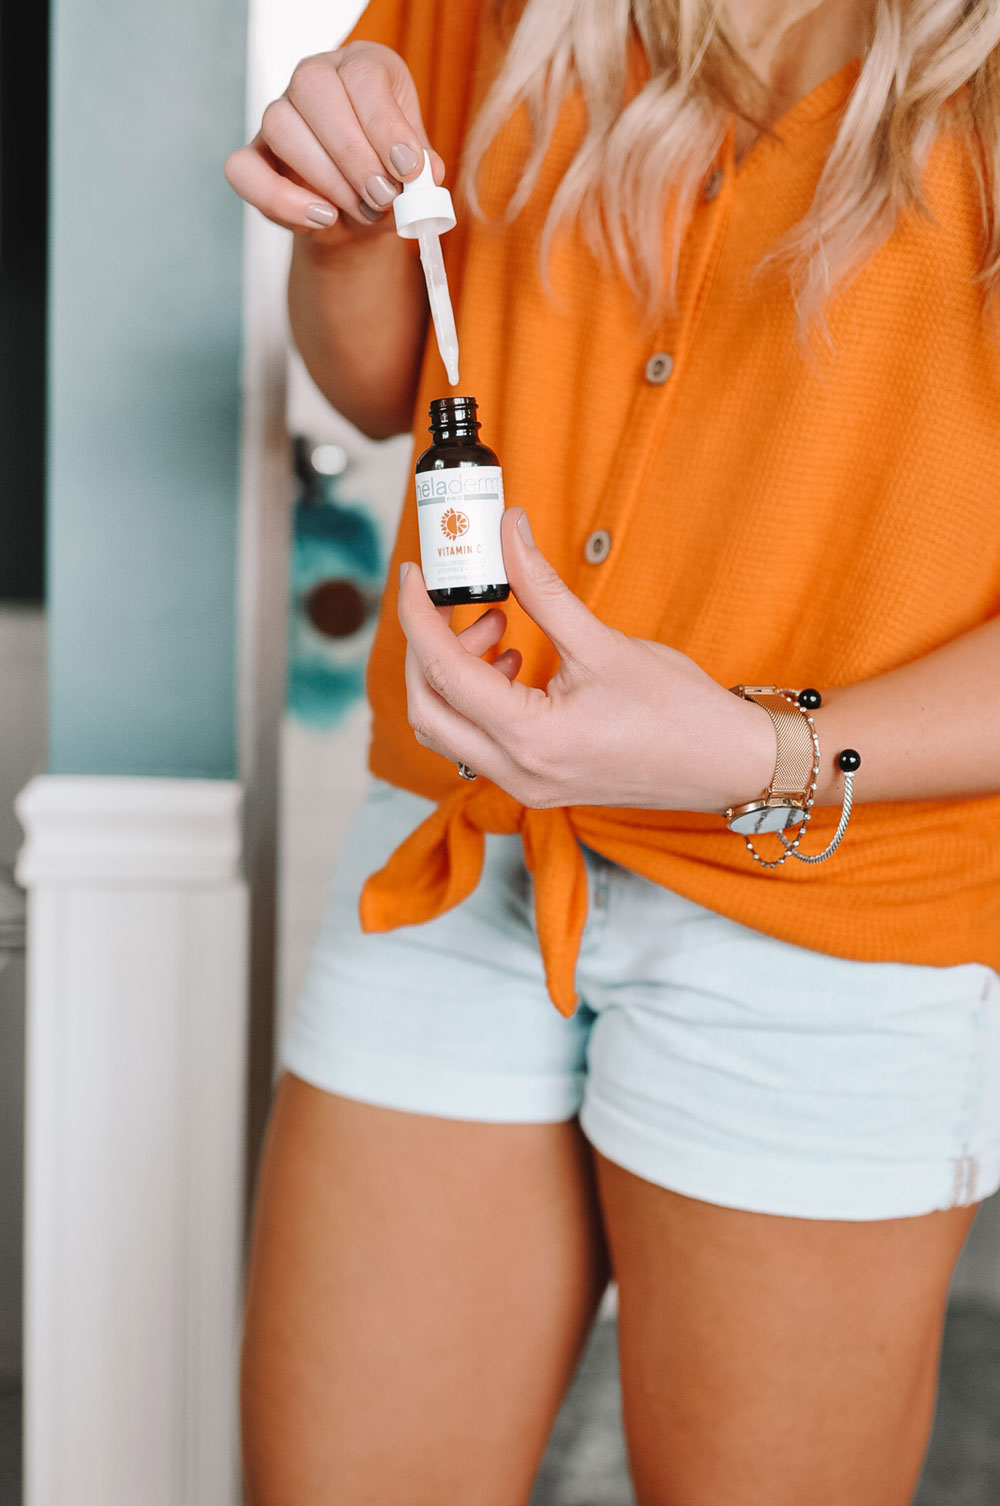 Blogger Amanda Martin shares how to brighten skin with Heladerm's Vitamin C serum